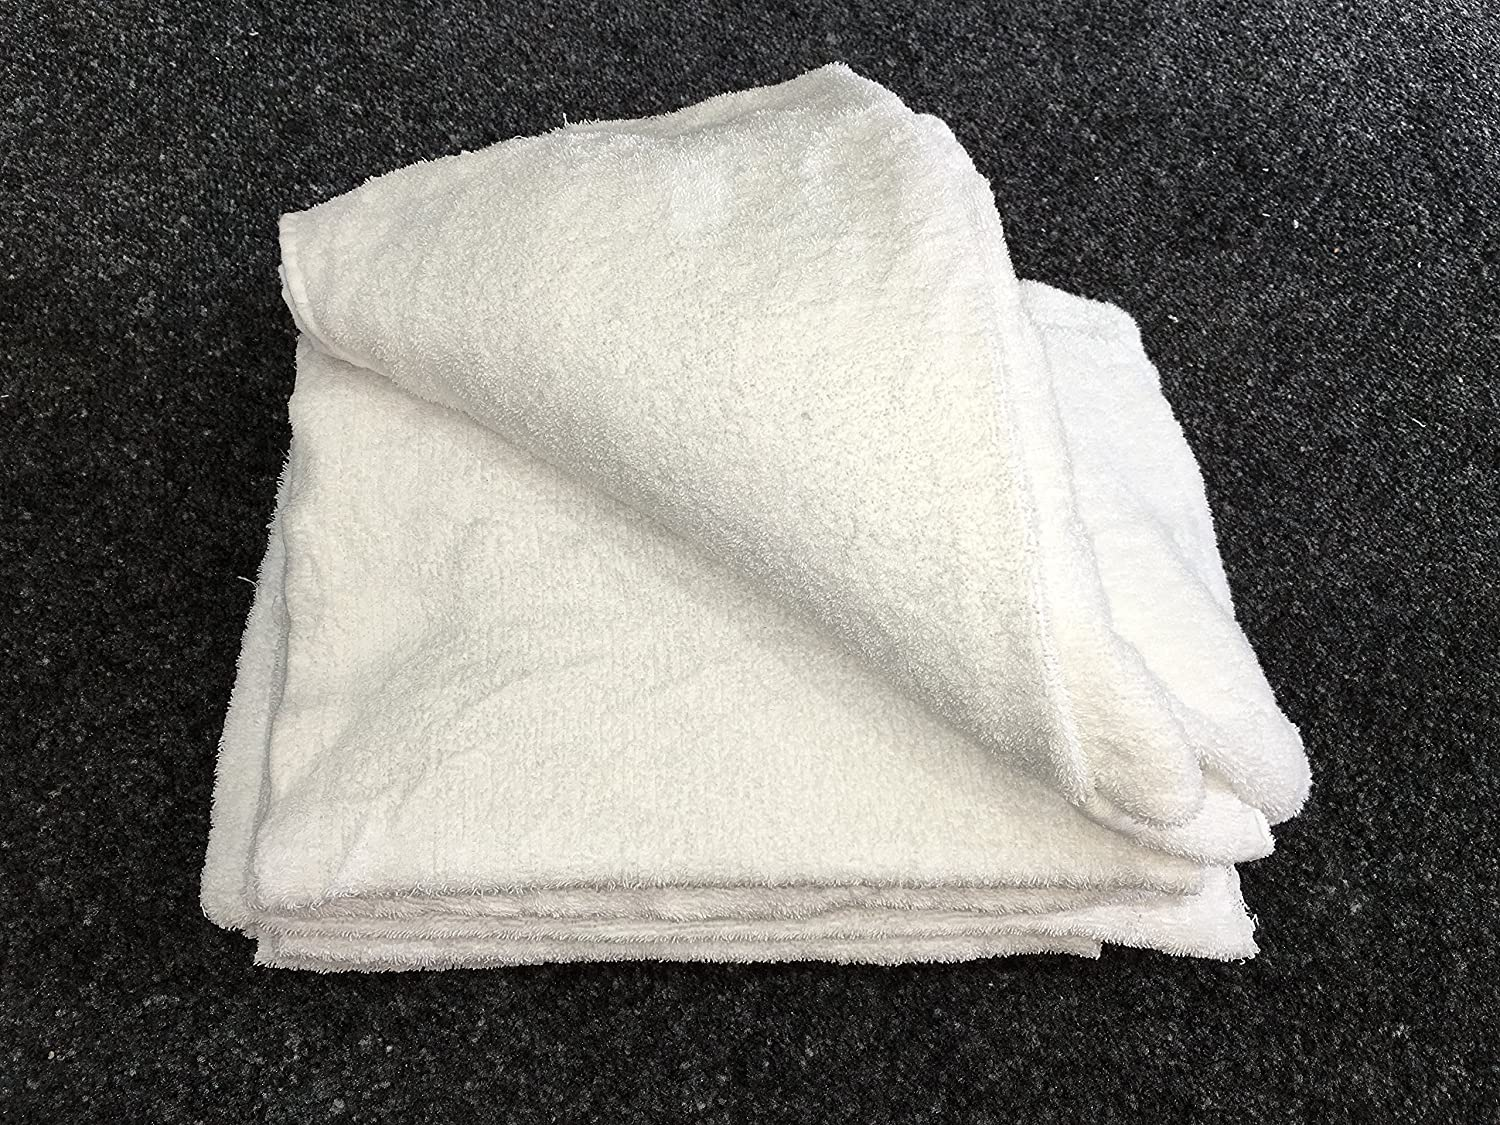 413752b144d Terry cloth rag cleaning cloth cleaning wipes pre cut cotton business  industry science jpg 1500x1125 Cloth